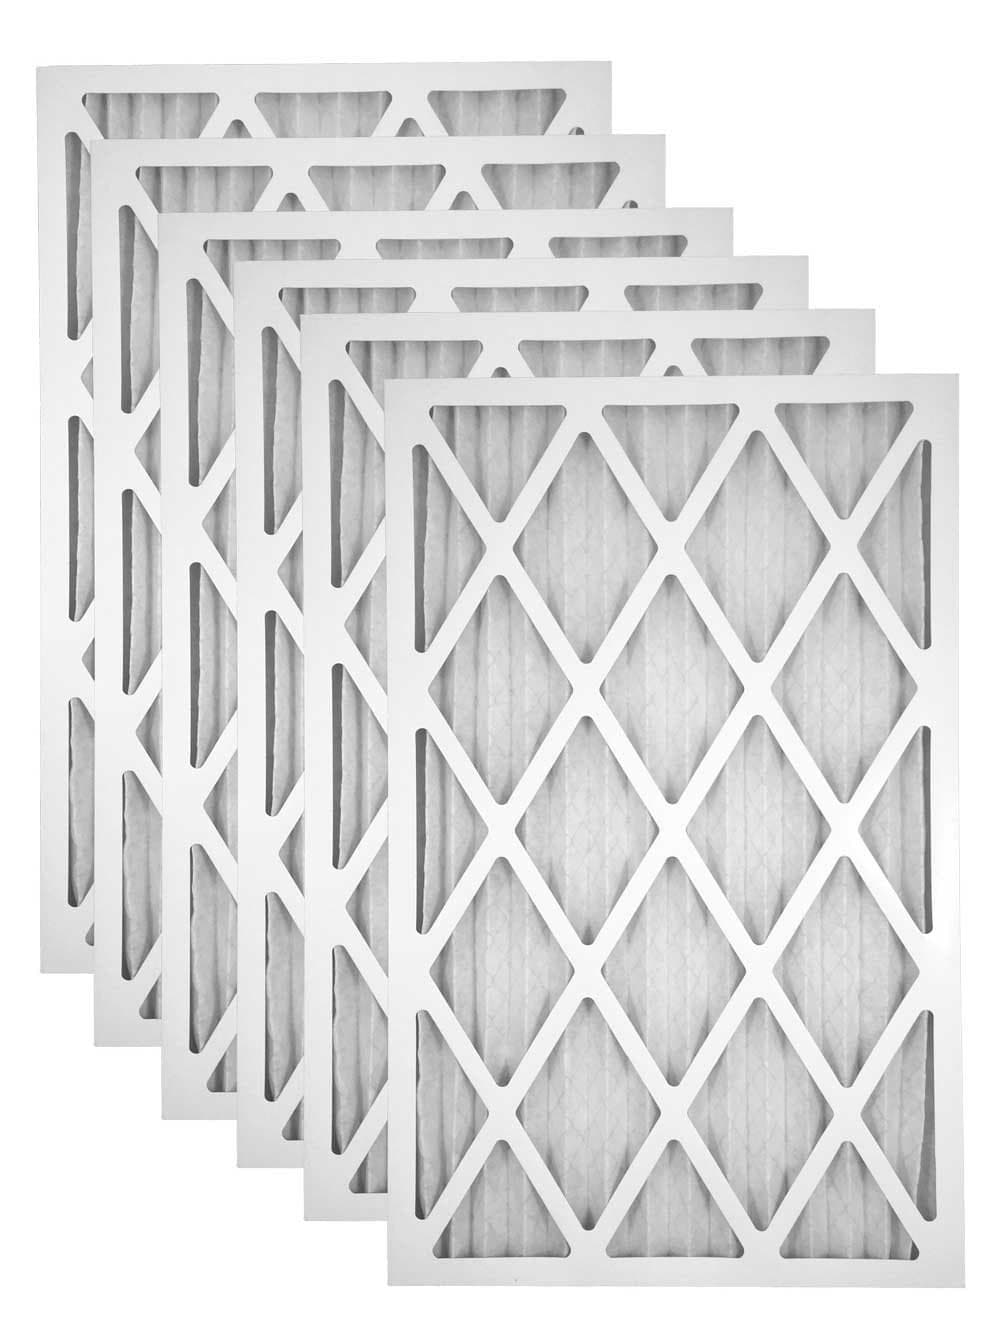 22x22x1 Merv 11 Pleated AC Furnace Filter - Case of 6 by Atomic Filters